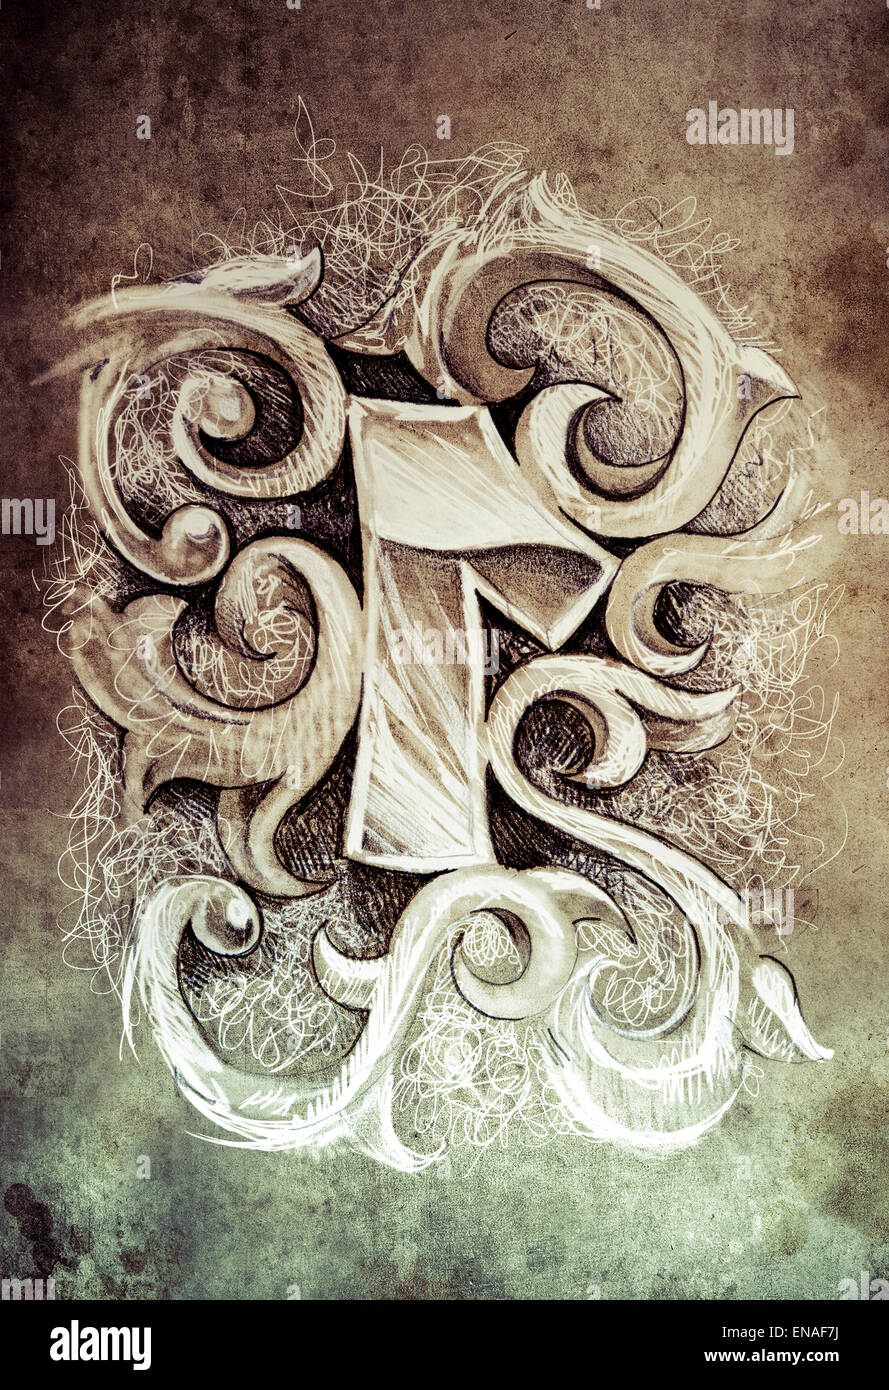 4689ee2b3c42b Sketch of tattoo art, one number, hand made Stock Photo: 81980742 ...